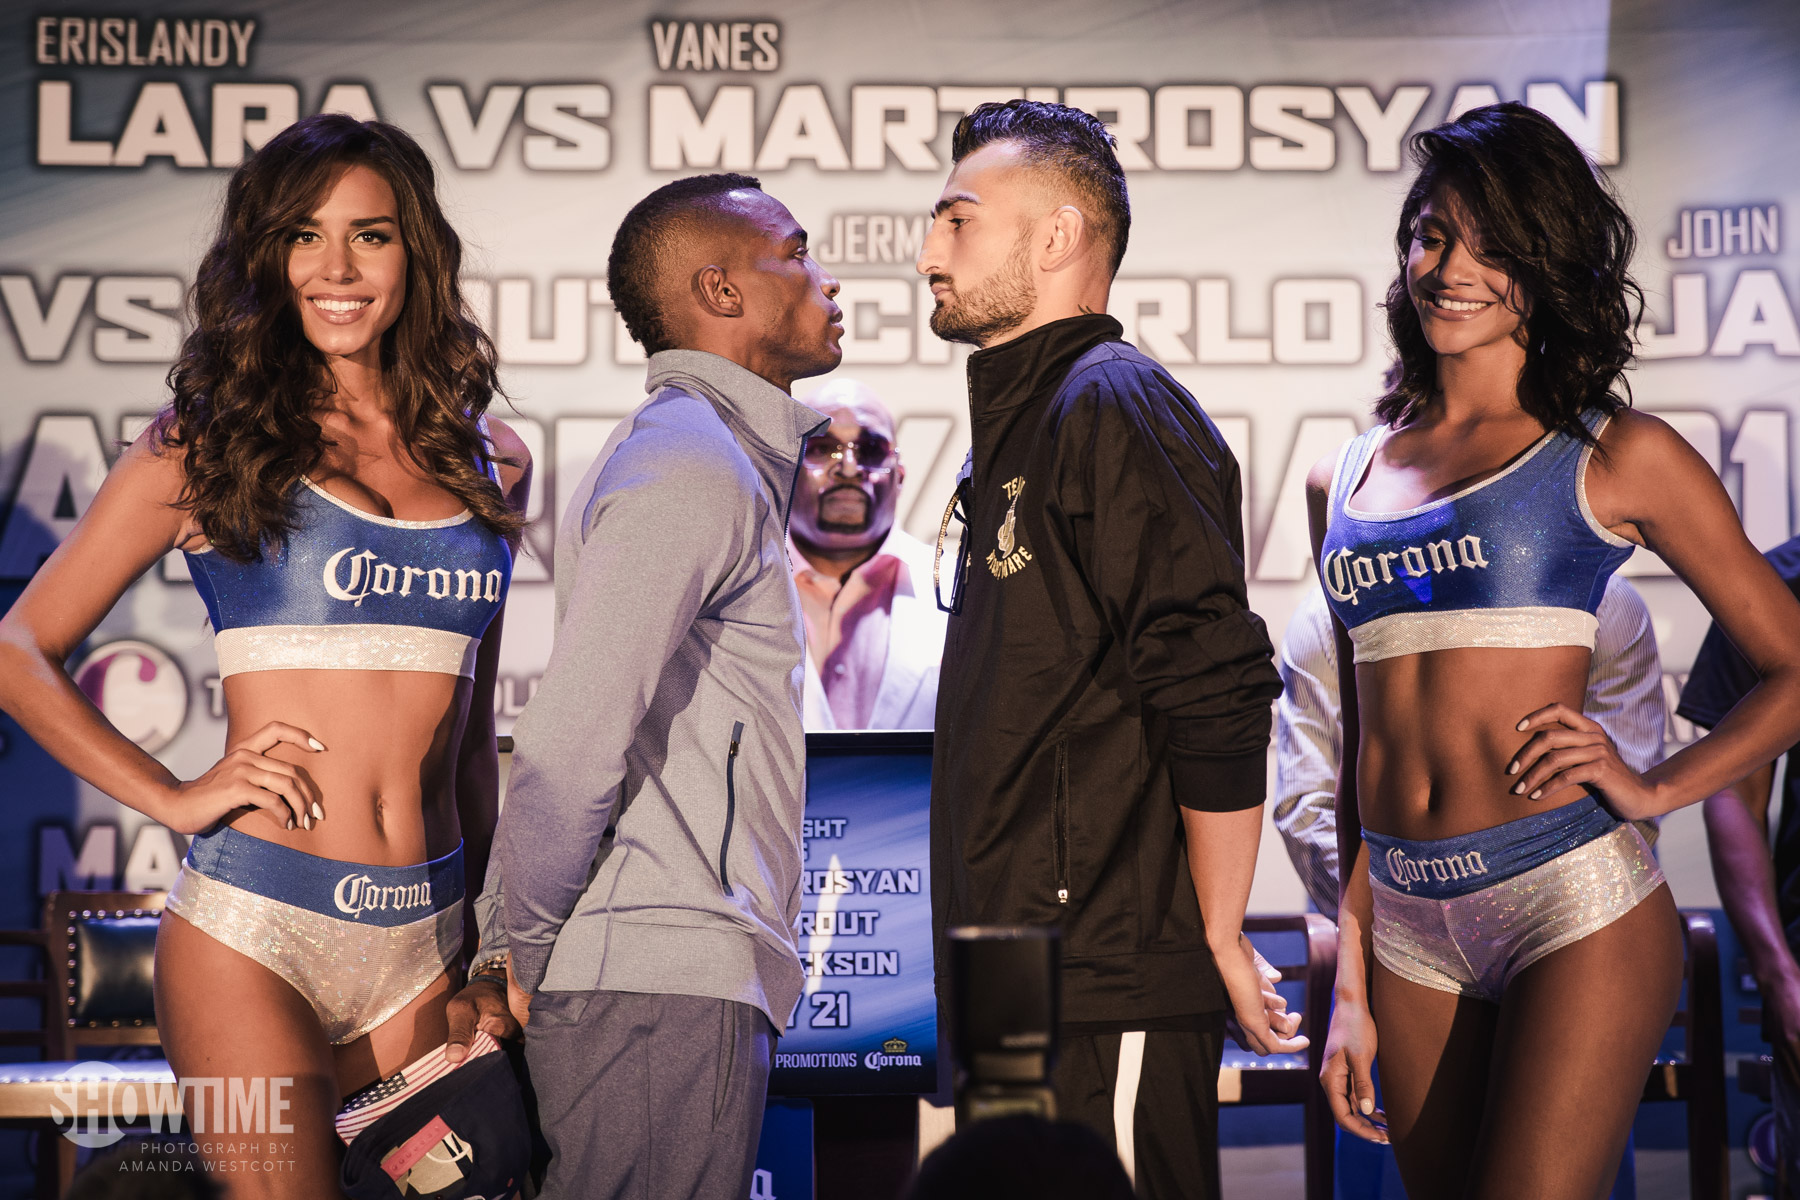 press conference-0014 - Erislandy Lara and Vanes Martirosyan